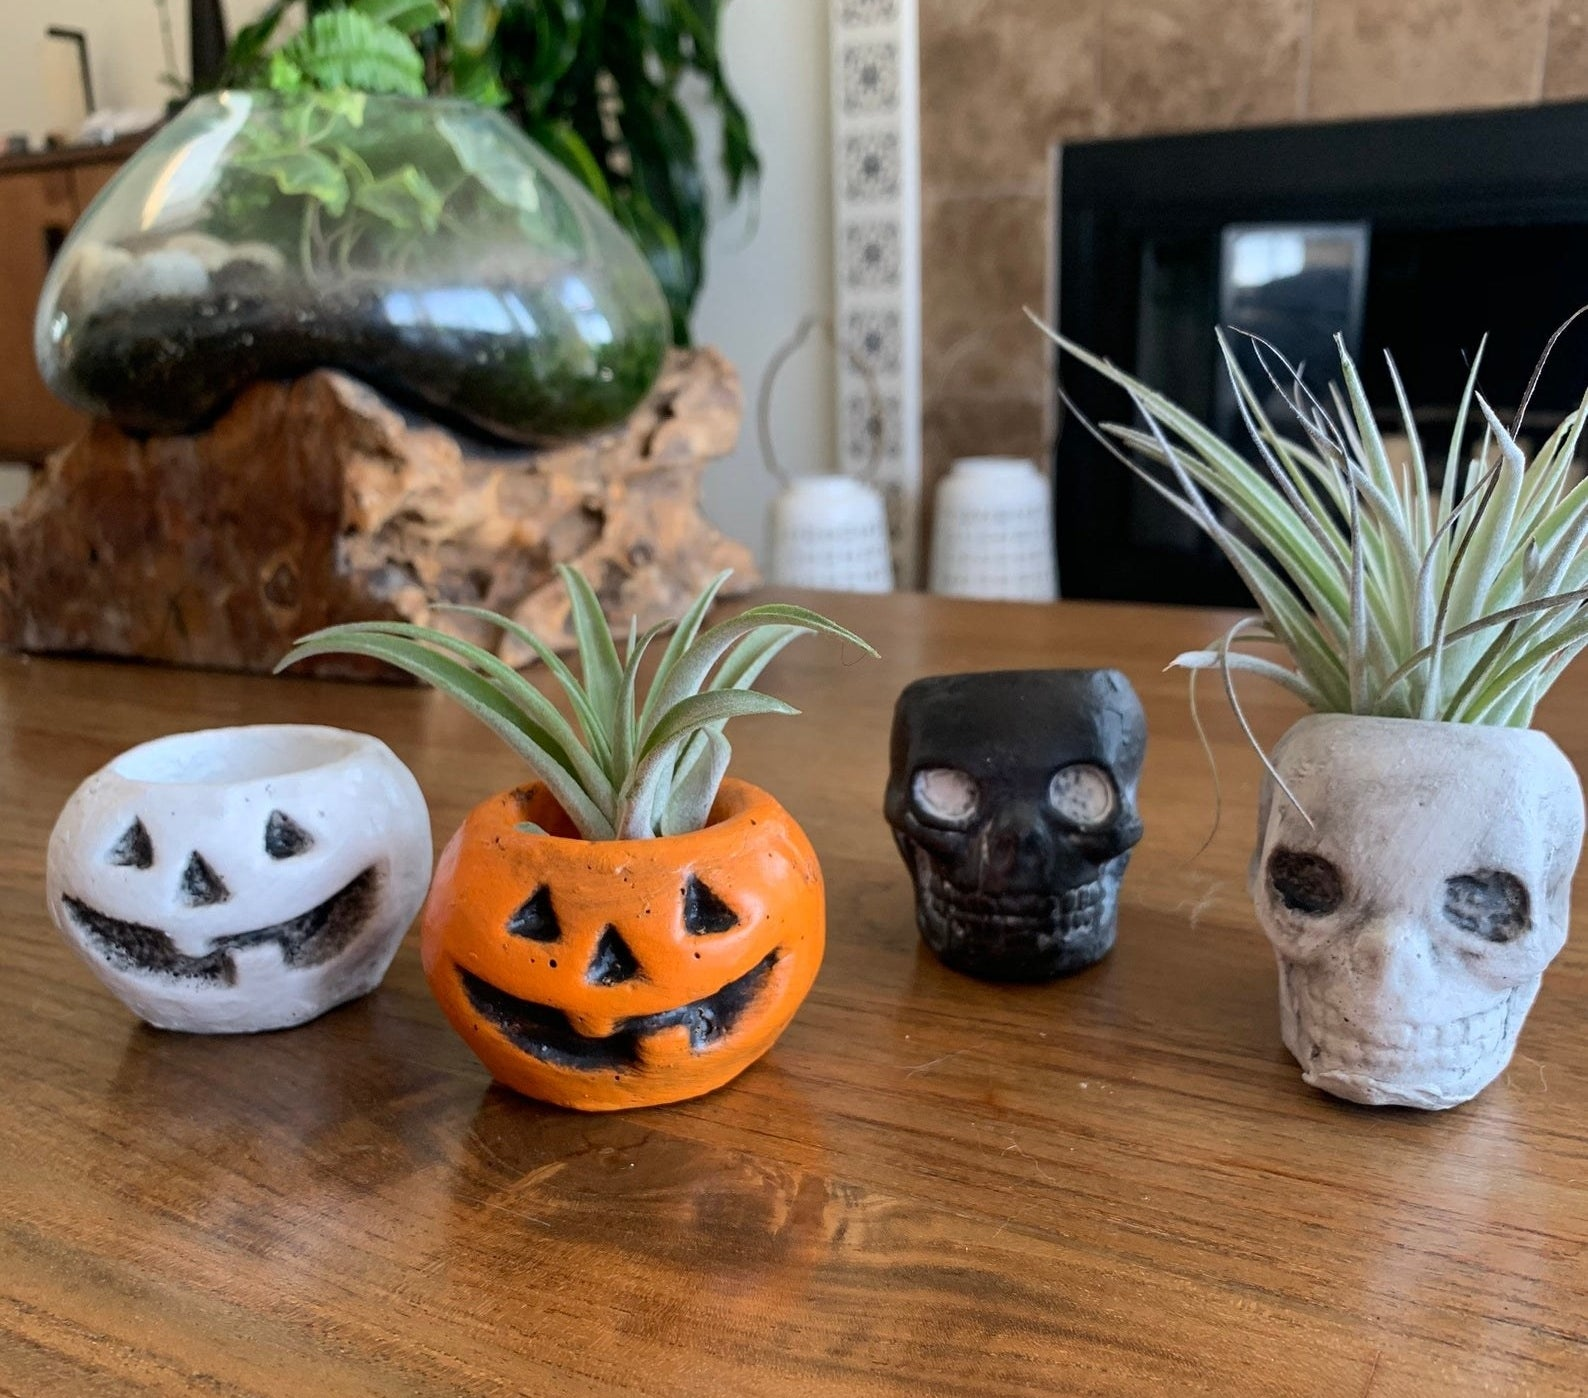 All four pot options — black and white jack-o'-lanterns and black and white skulls — with two air plants